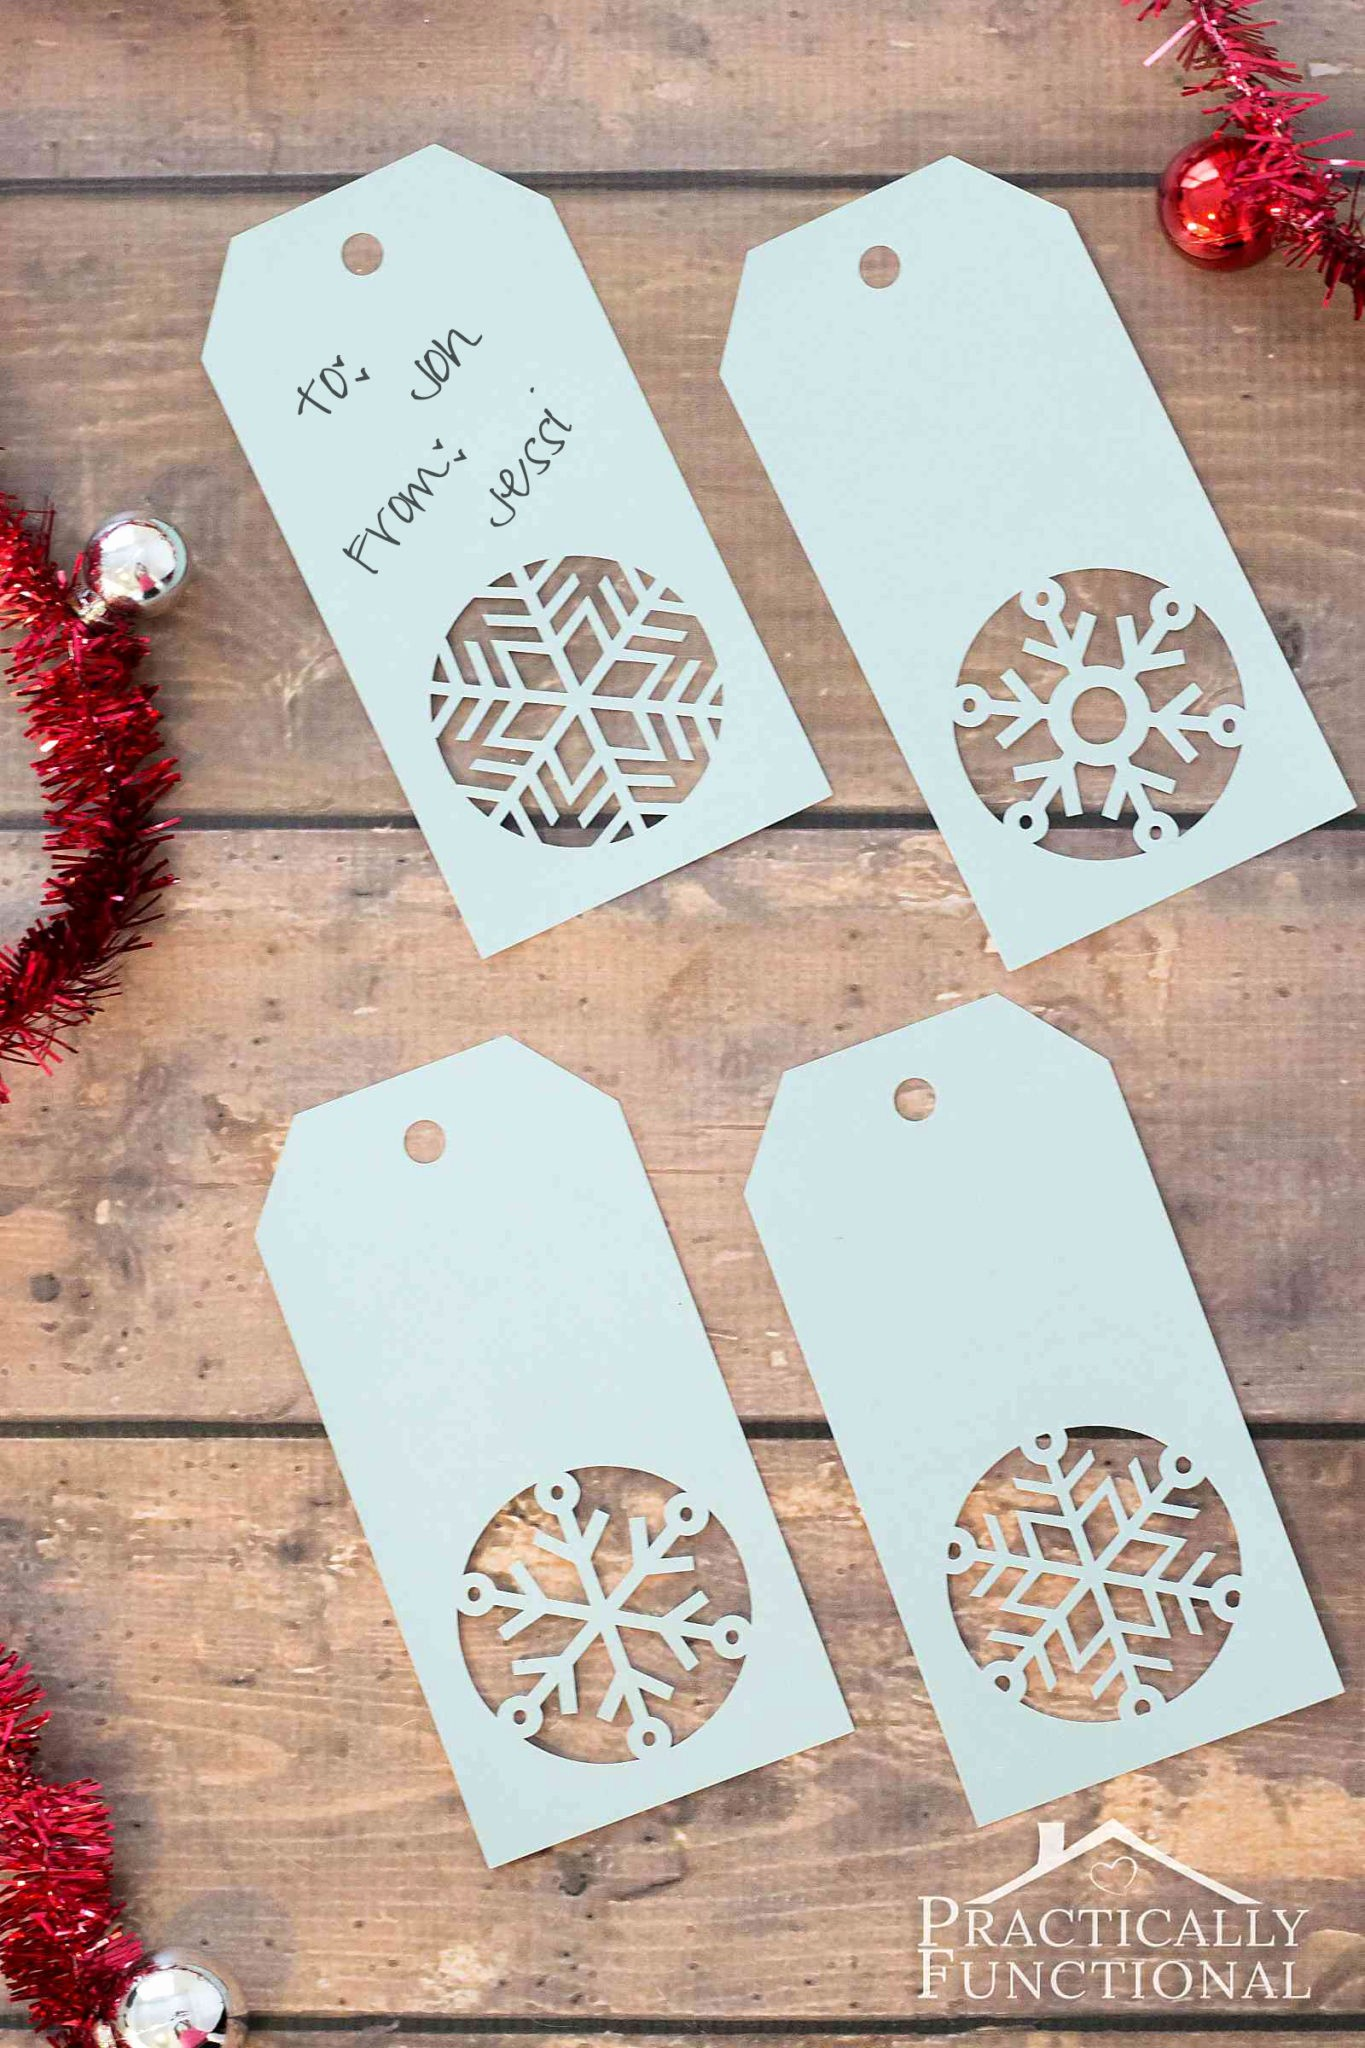 Template for Tags for Gifts Elegant Handmade Snowflake Christmas Gift Tags Free Template